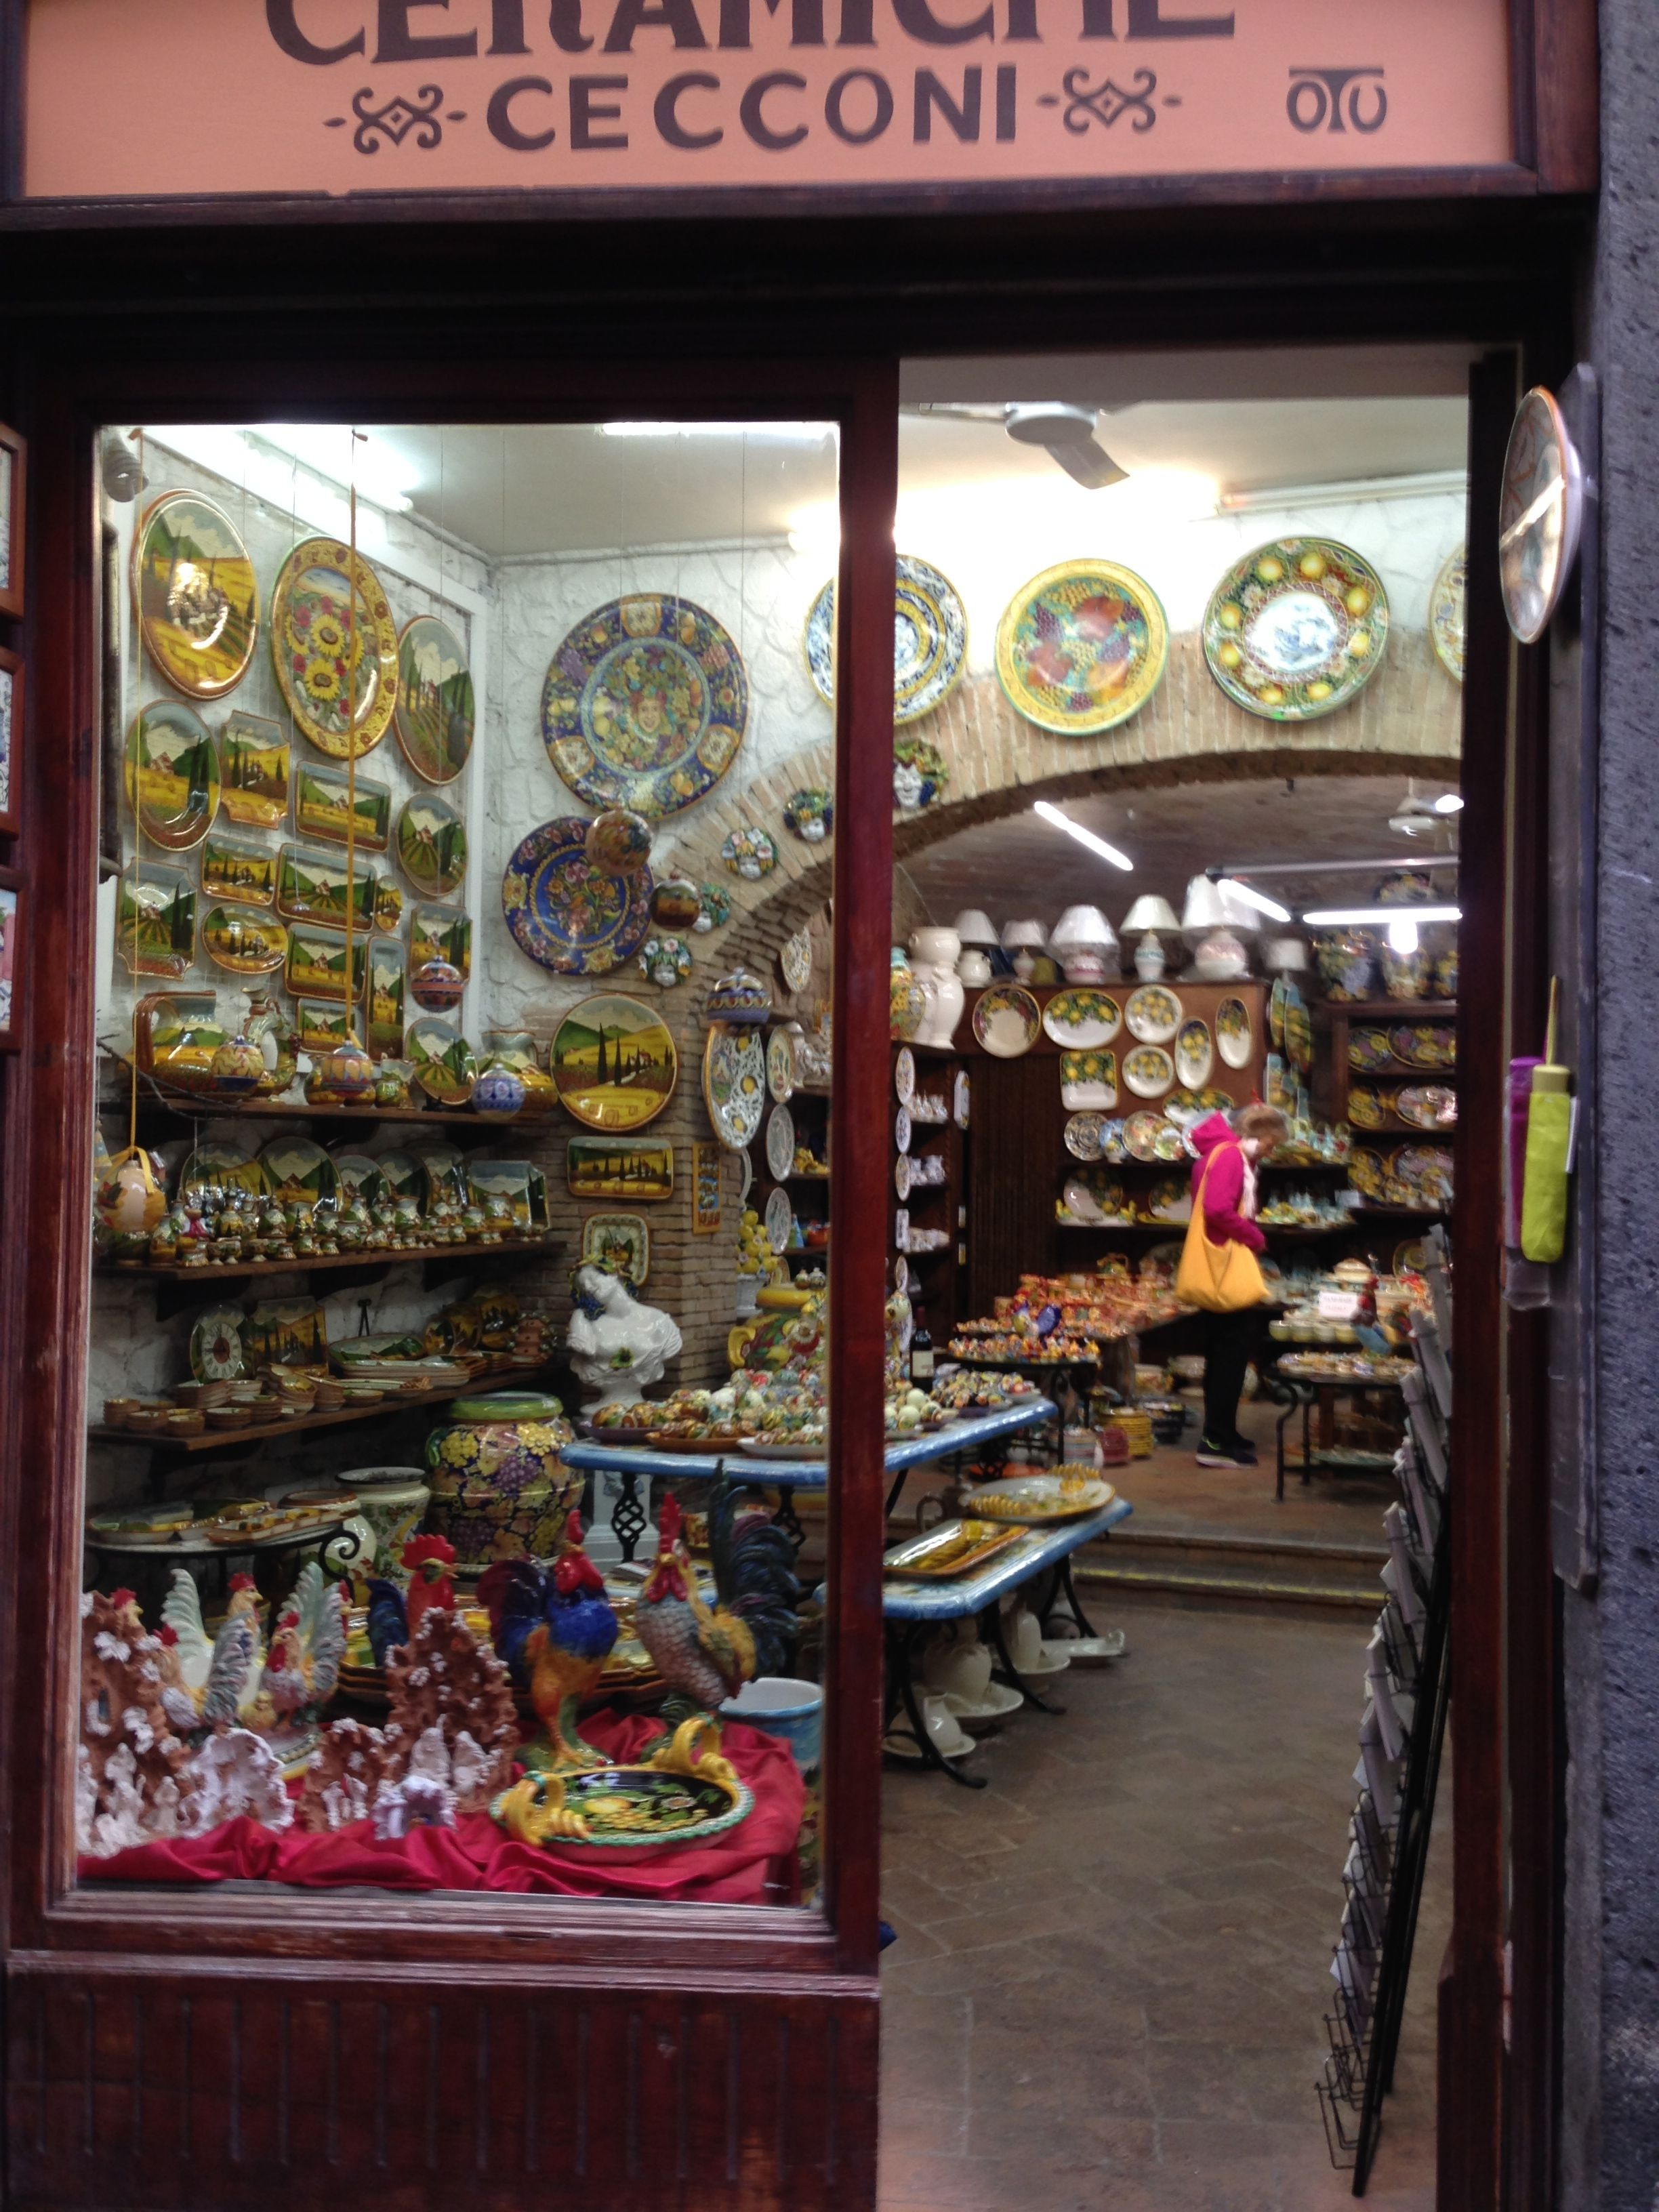 Store in orvieto Italy, Fair grounds, Carousel